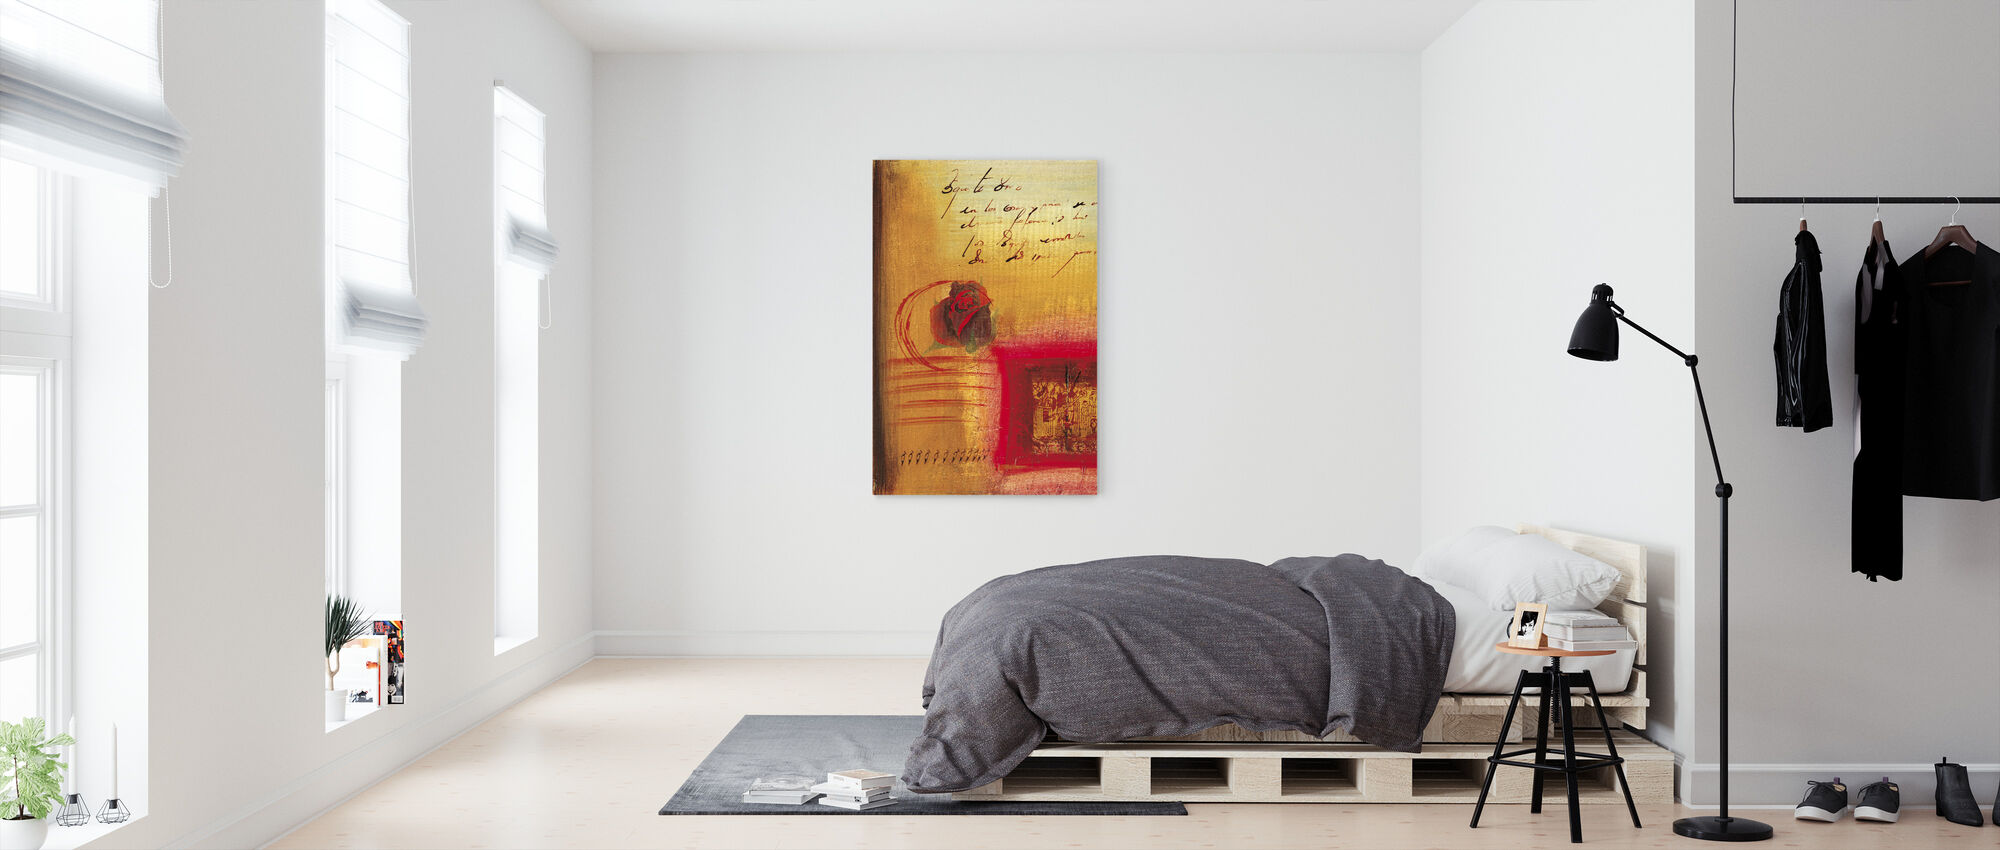 Here I love you I - Canvas print - Bedroom